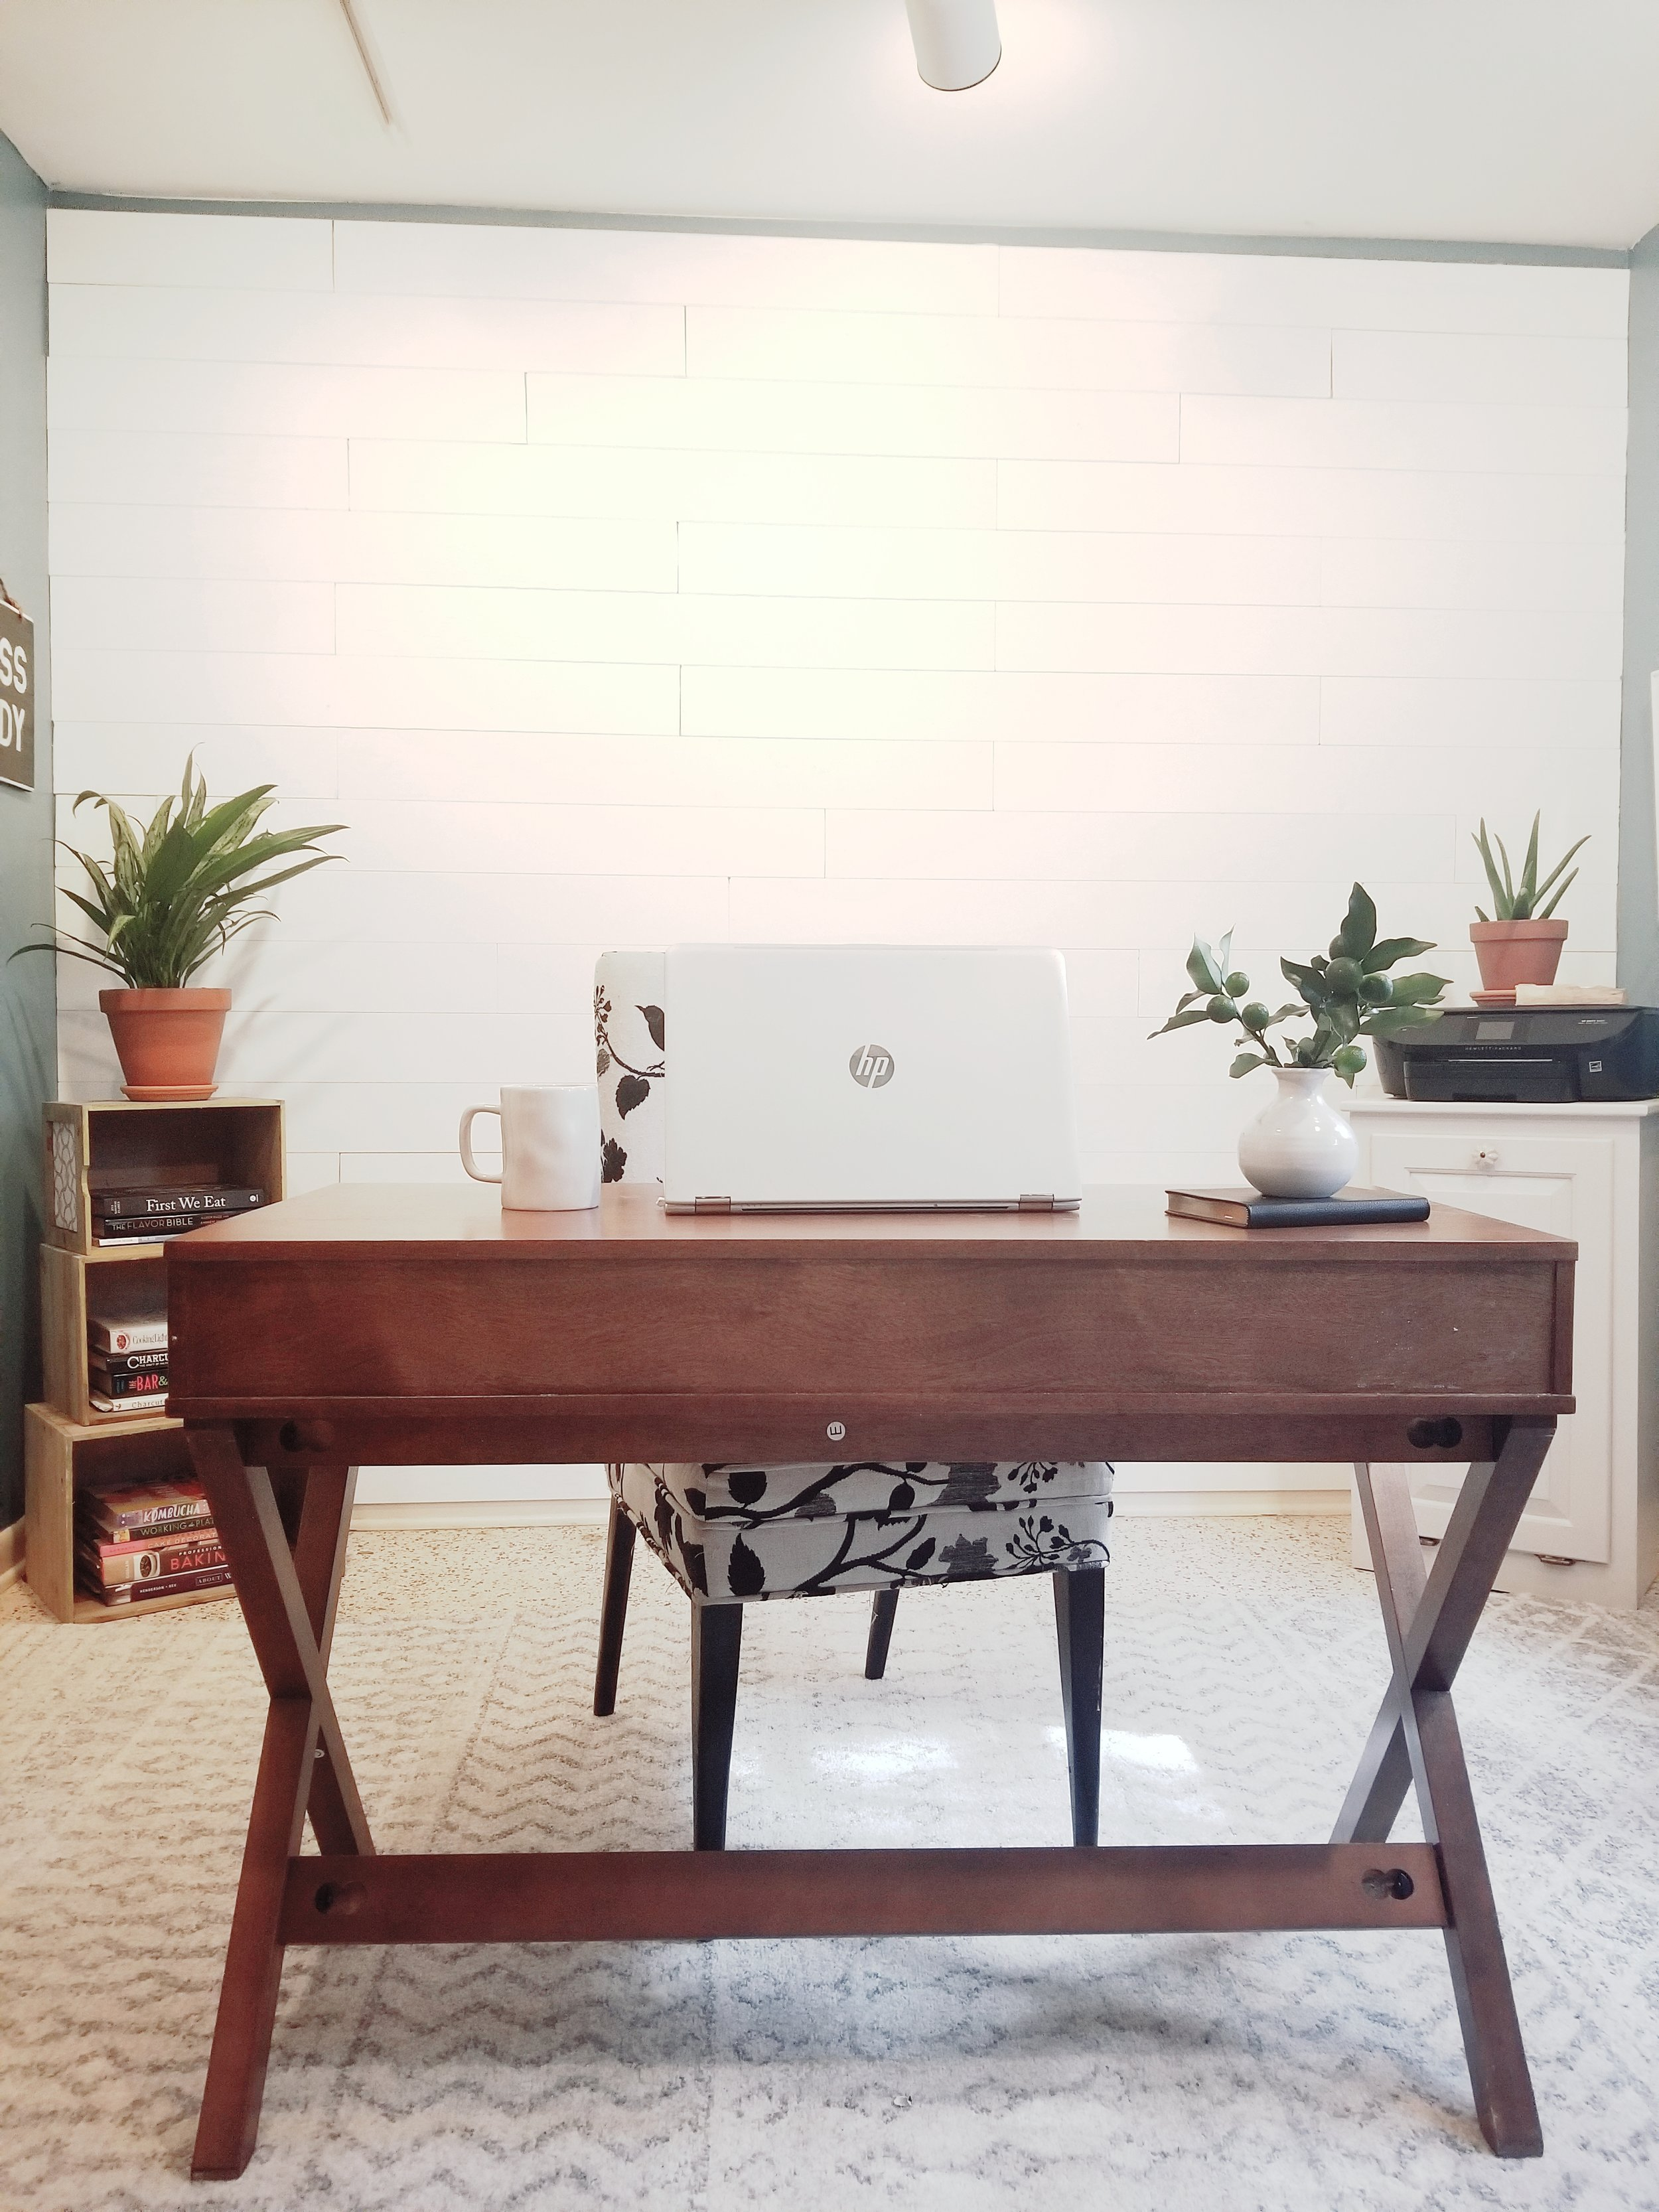 Home office wall planks accent wall- White farmhouse shiplap wall. sherwin williams paint